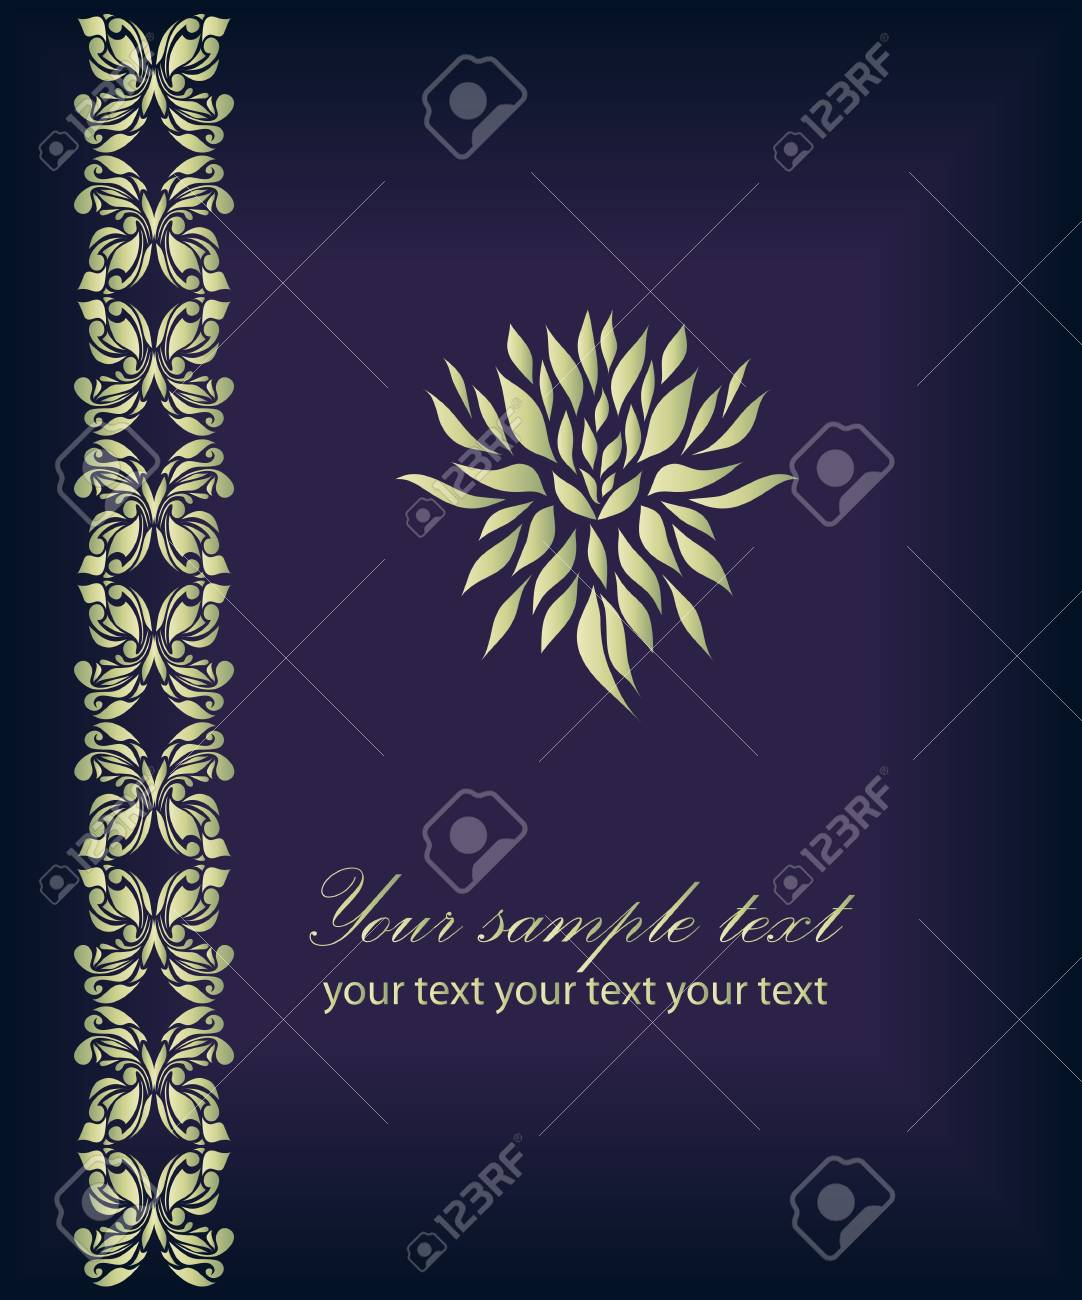 Vintage isolated on background Stock Vector - 14488646